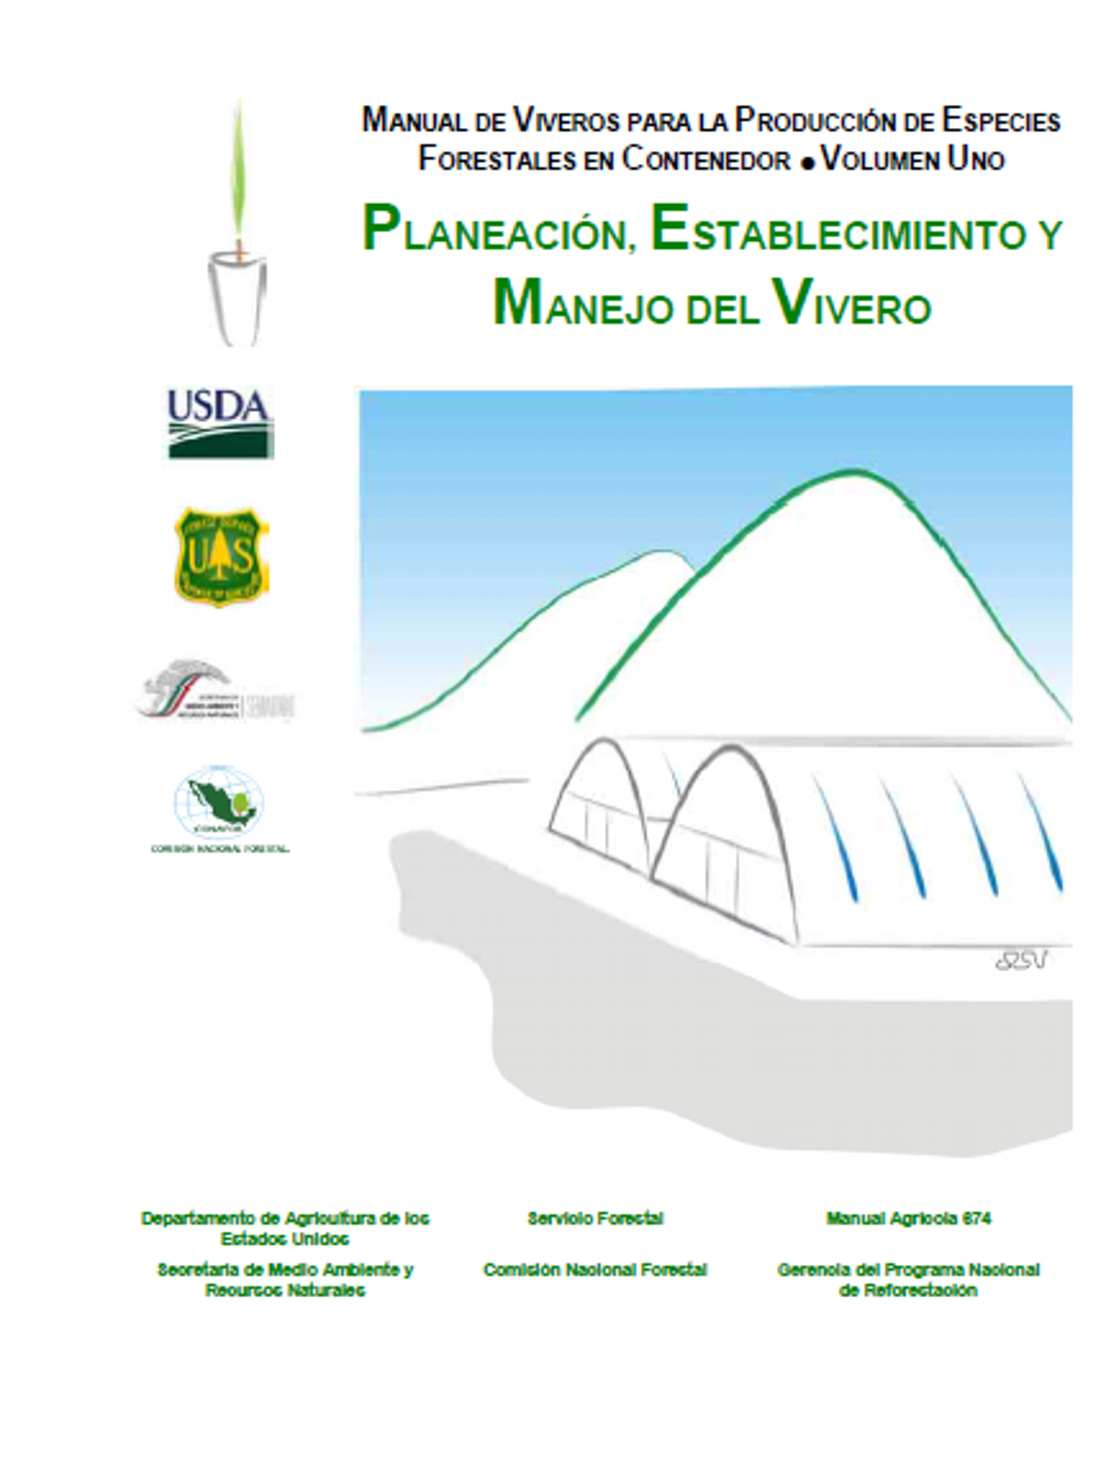 Ingenieria forestal documento planeaci n for Manejo de viveros forestales